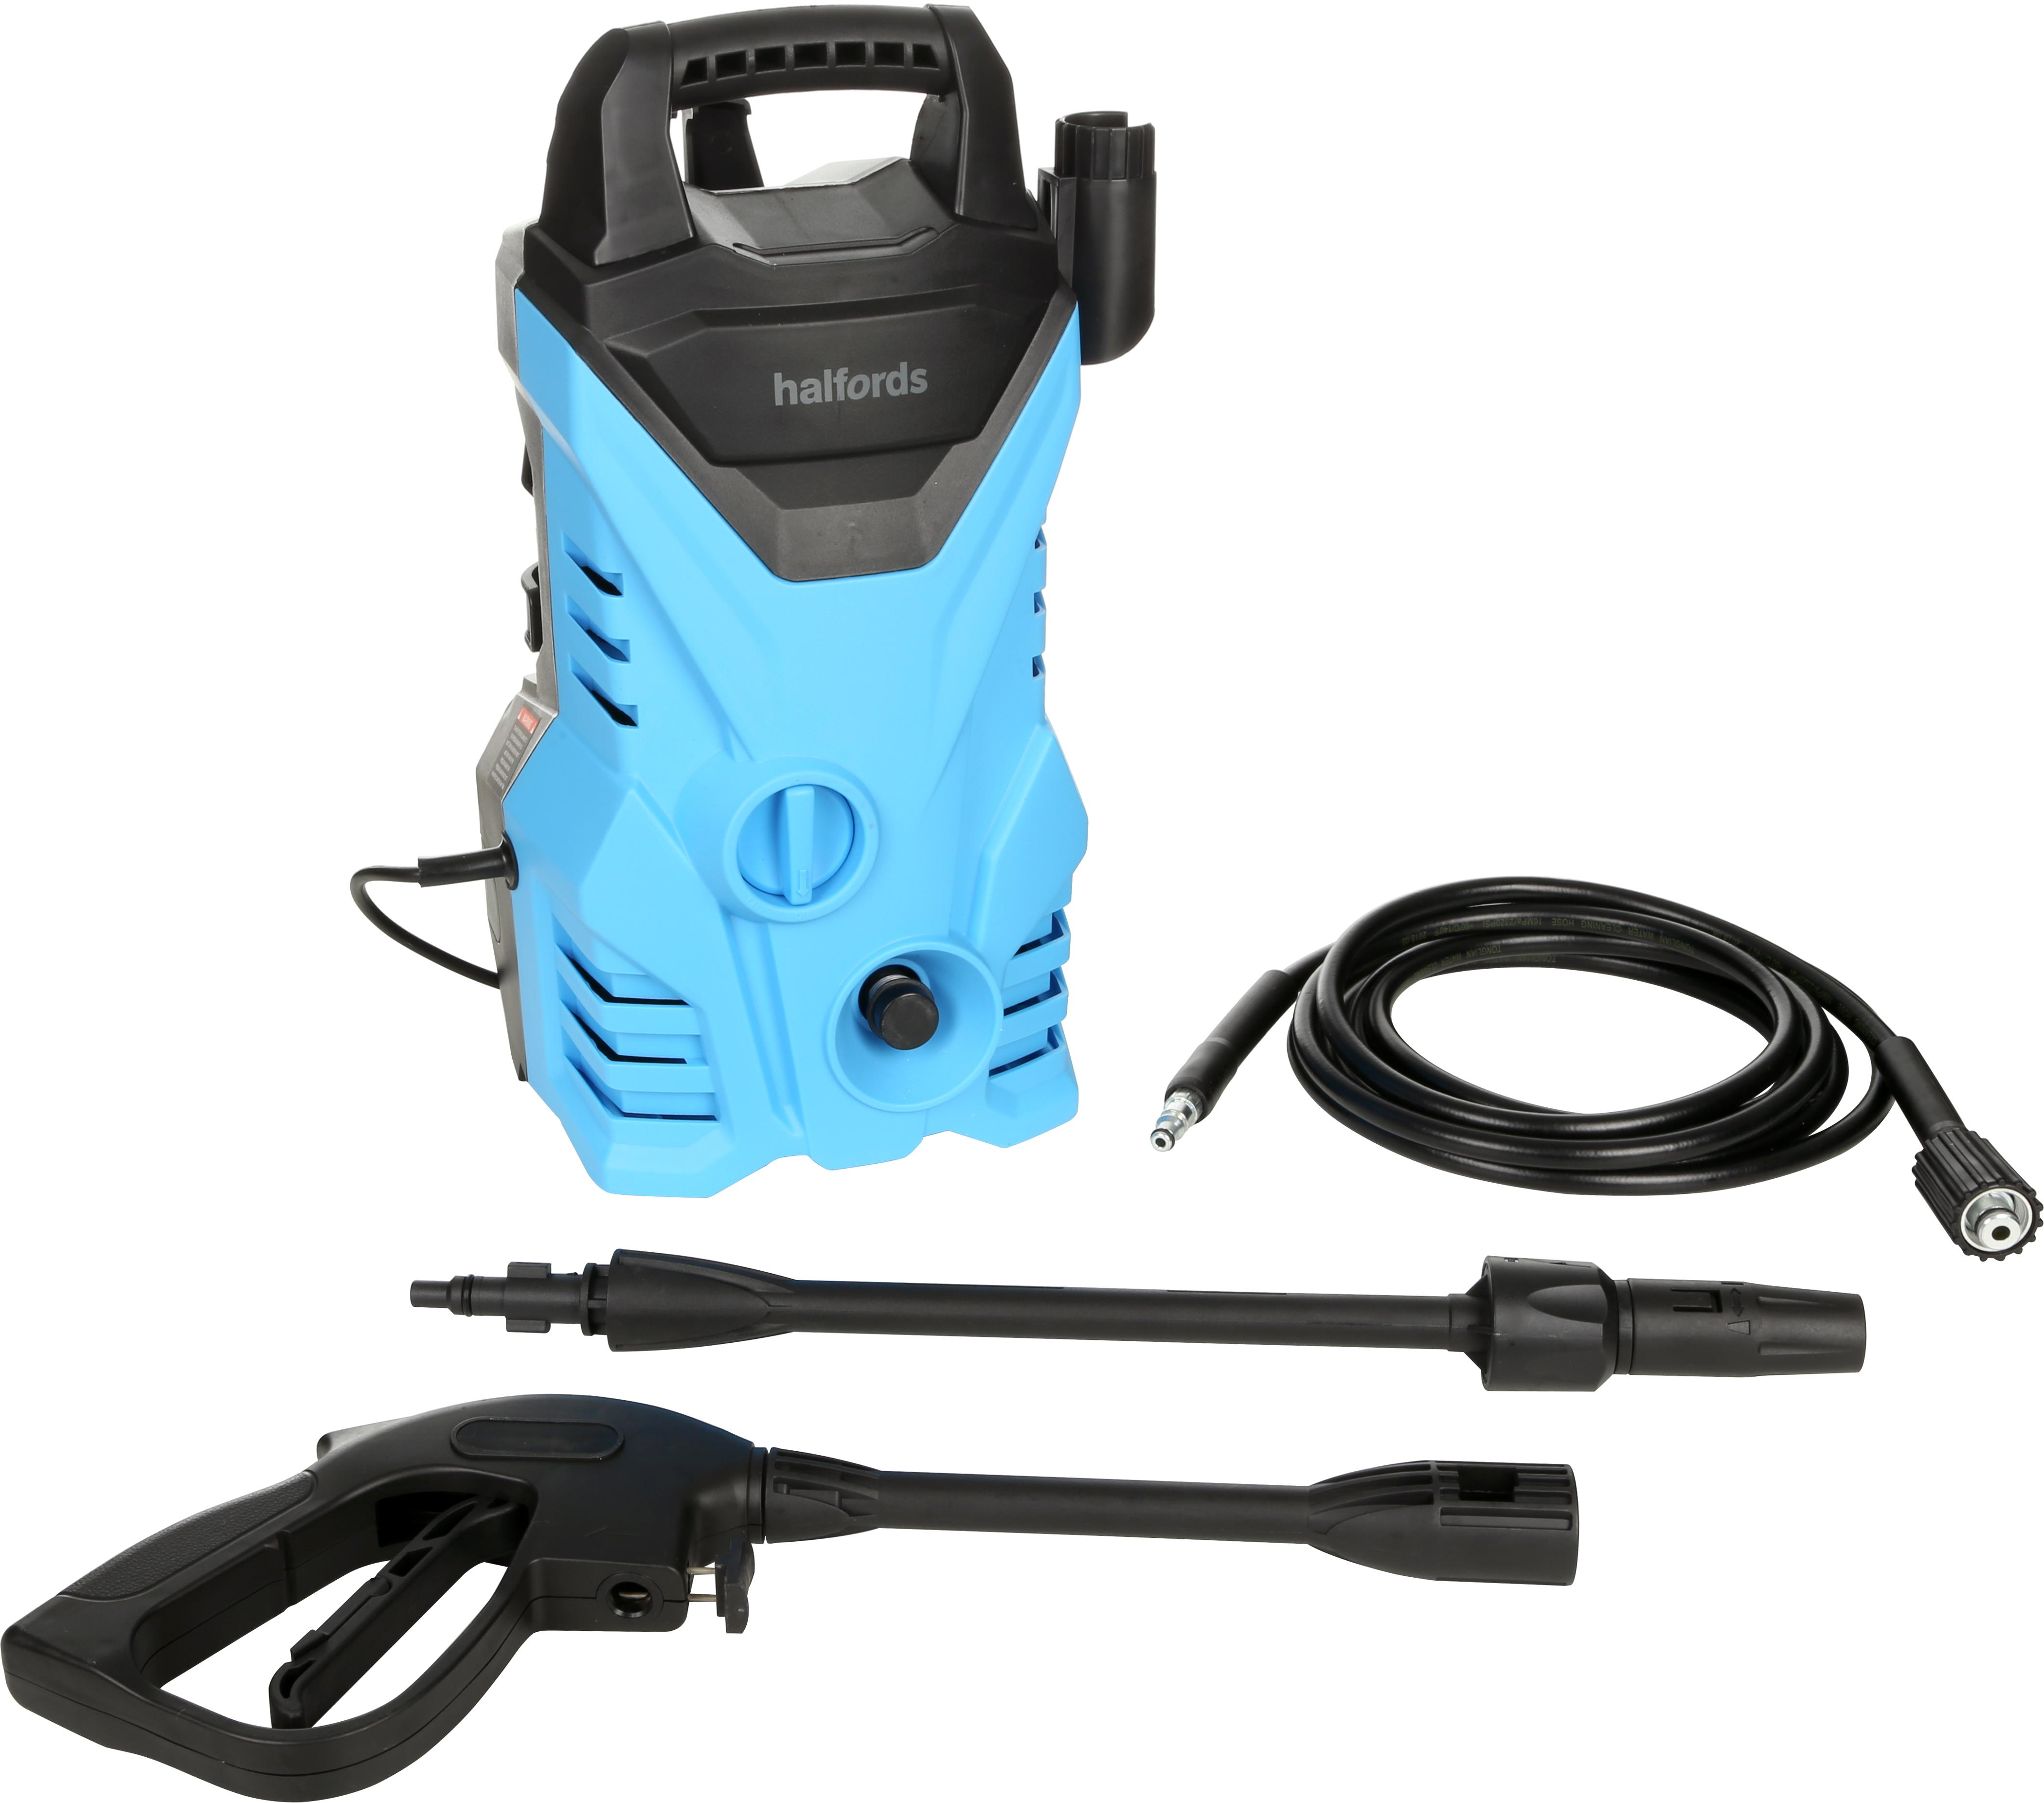 Halfords Pw10 Pressure Washer